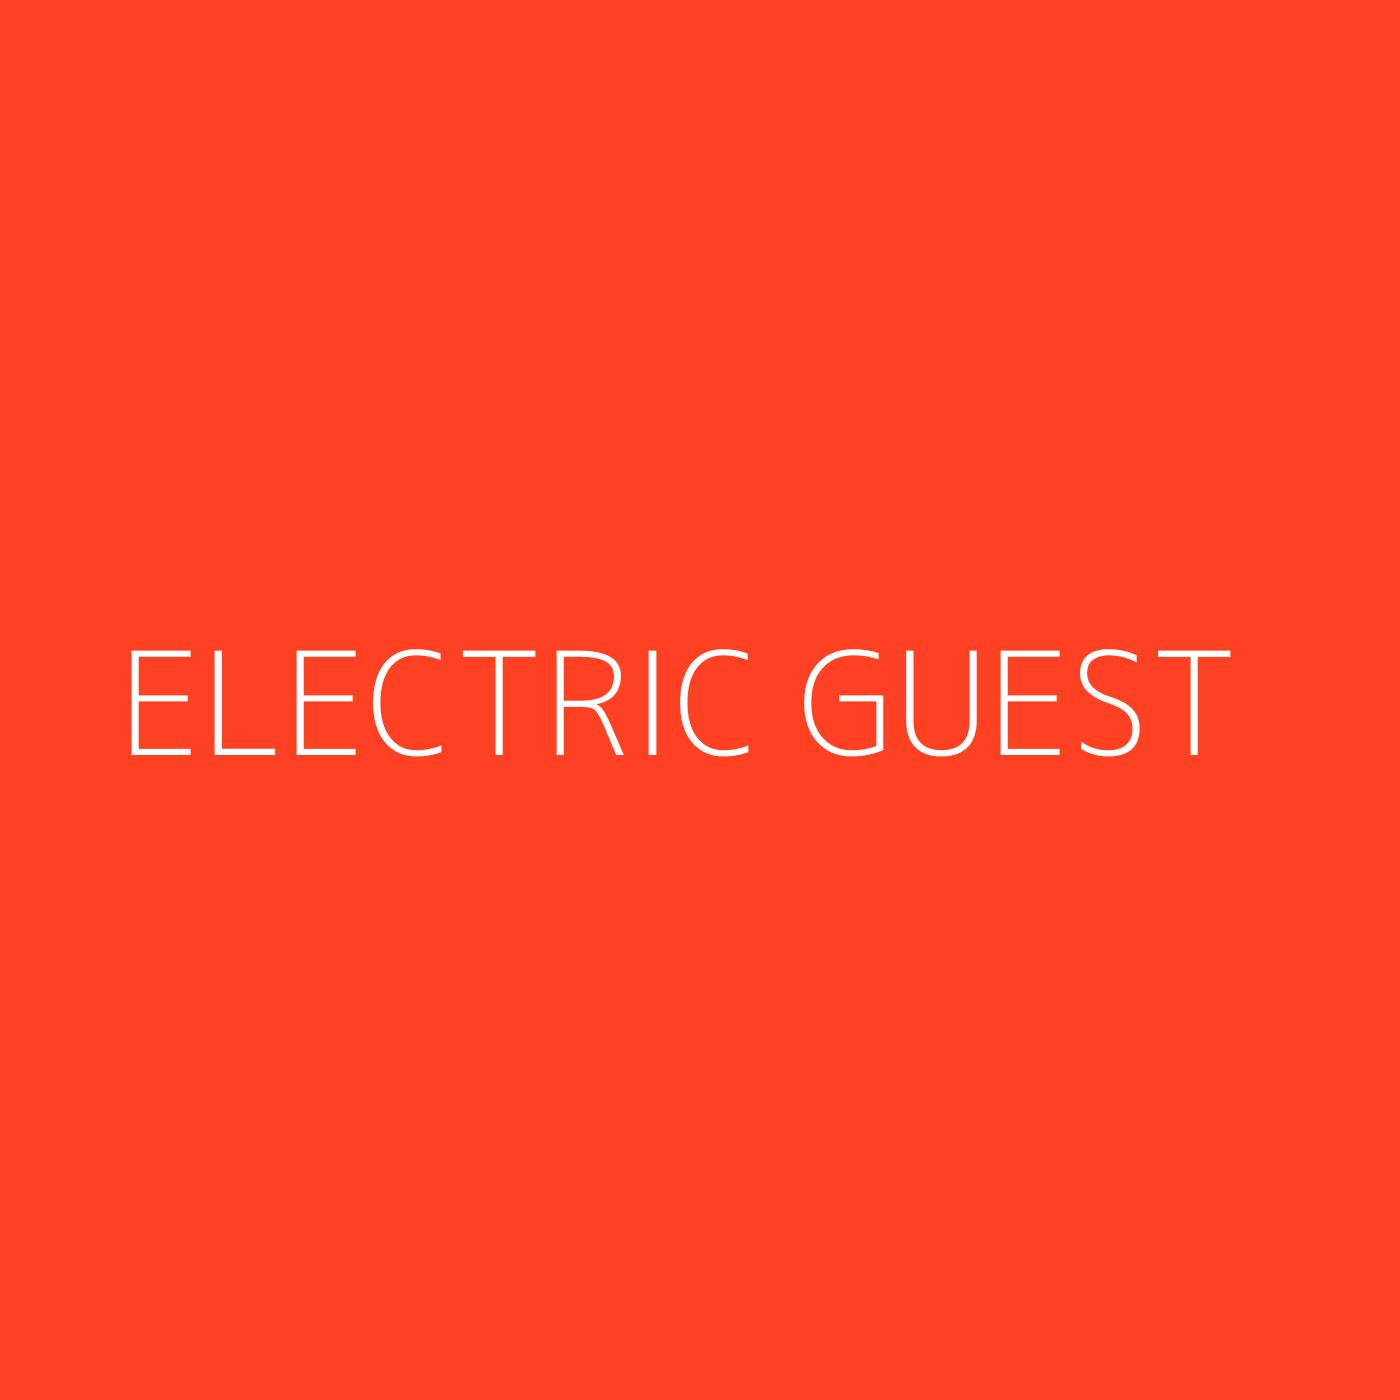 Electric Guest Playlist Artwork